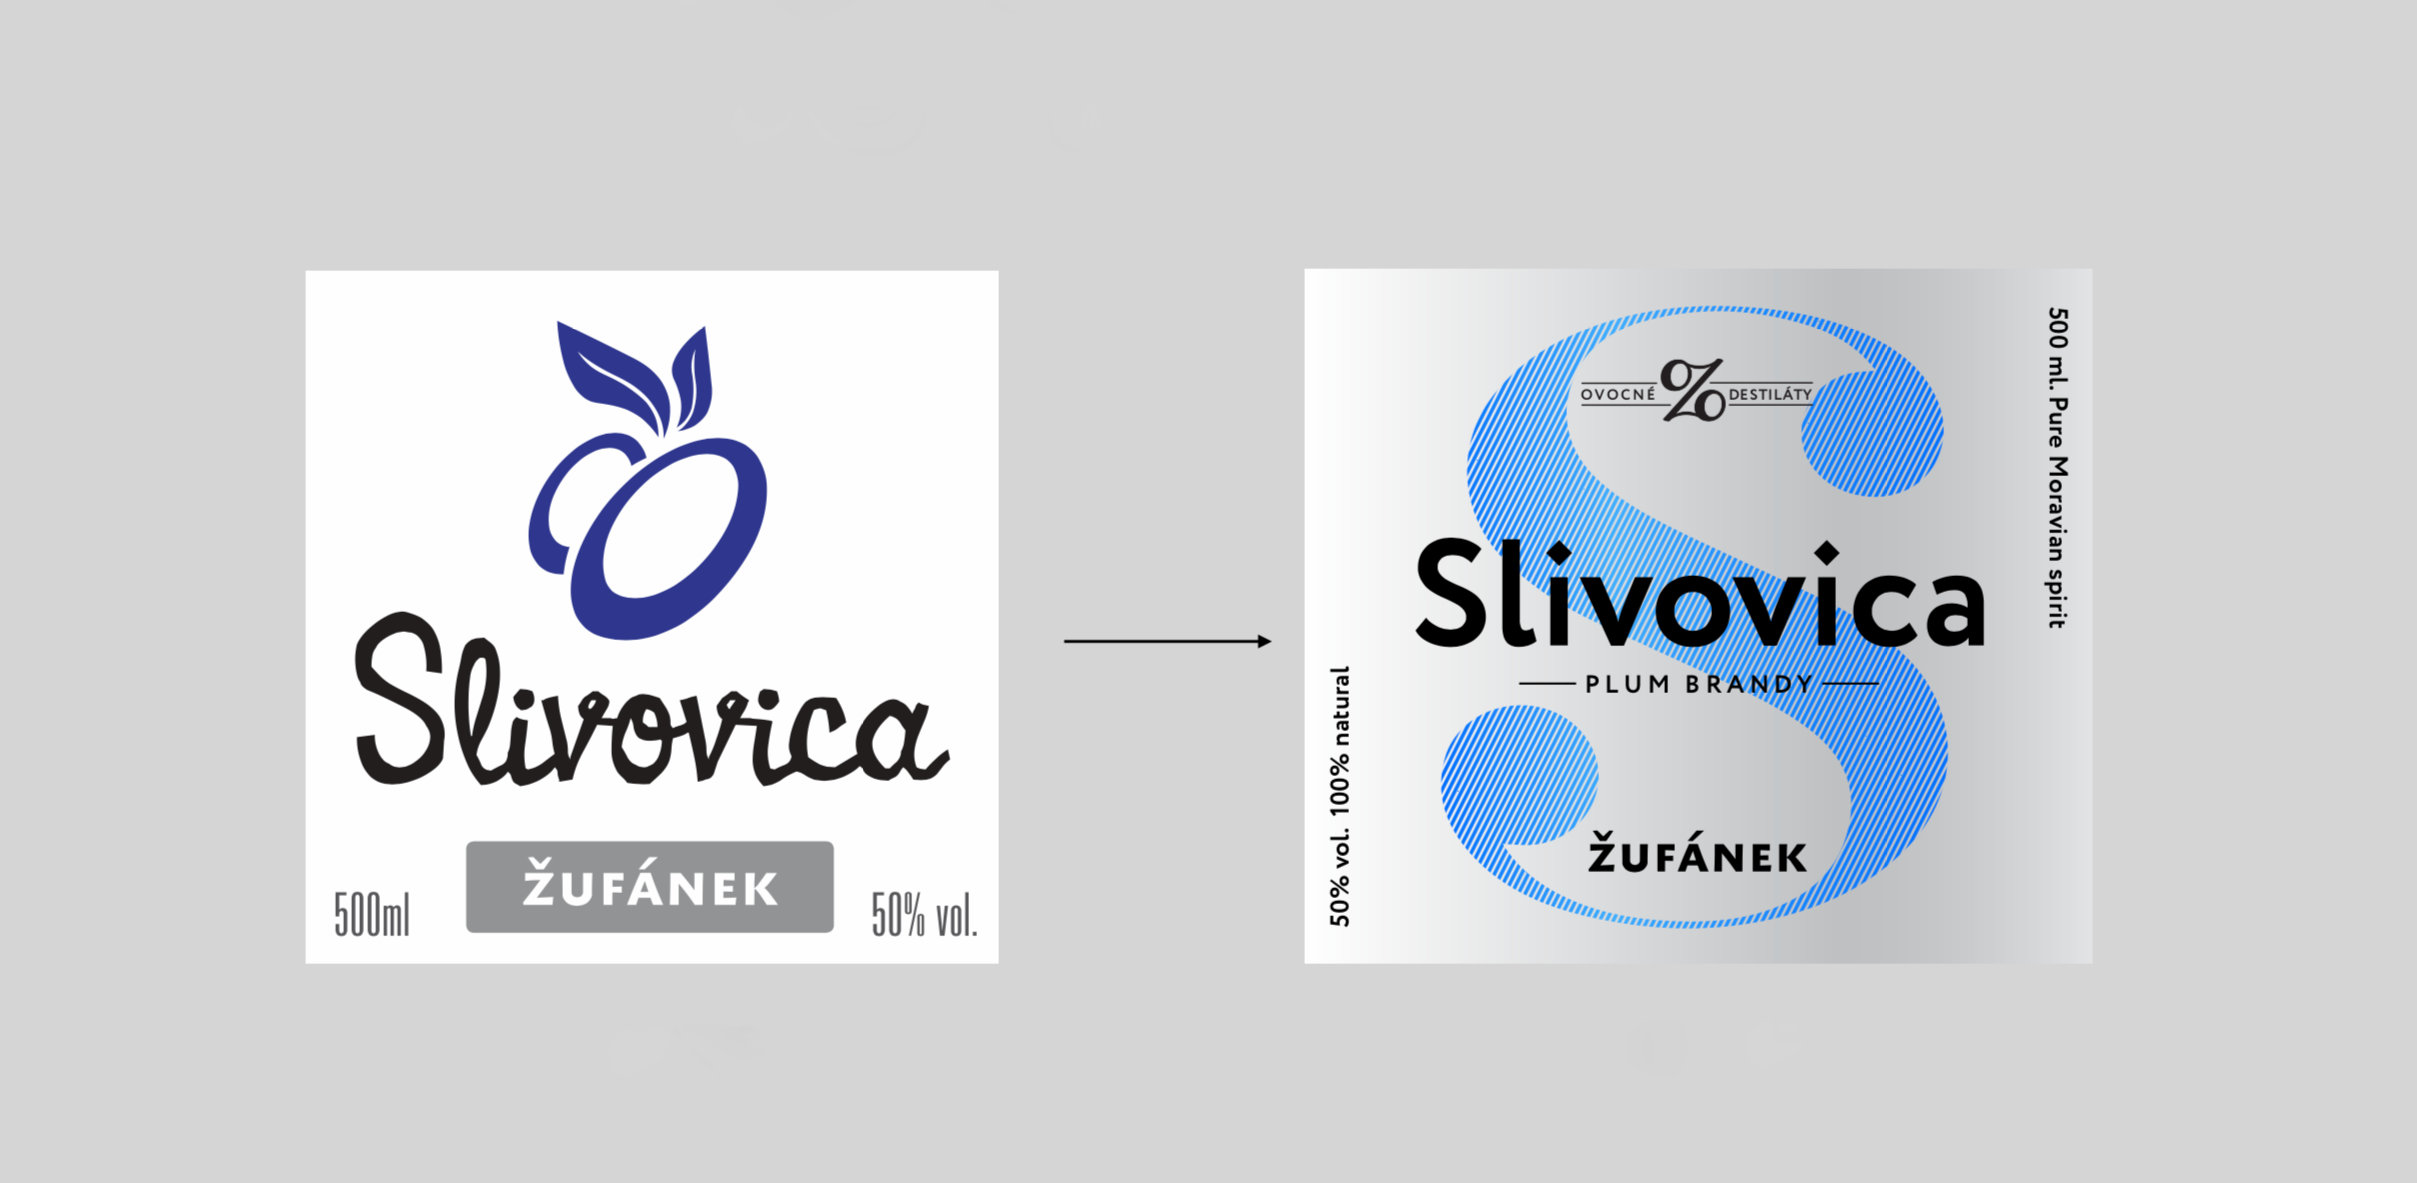 Redesigned labels | Žufánek cz